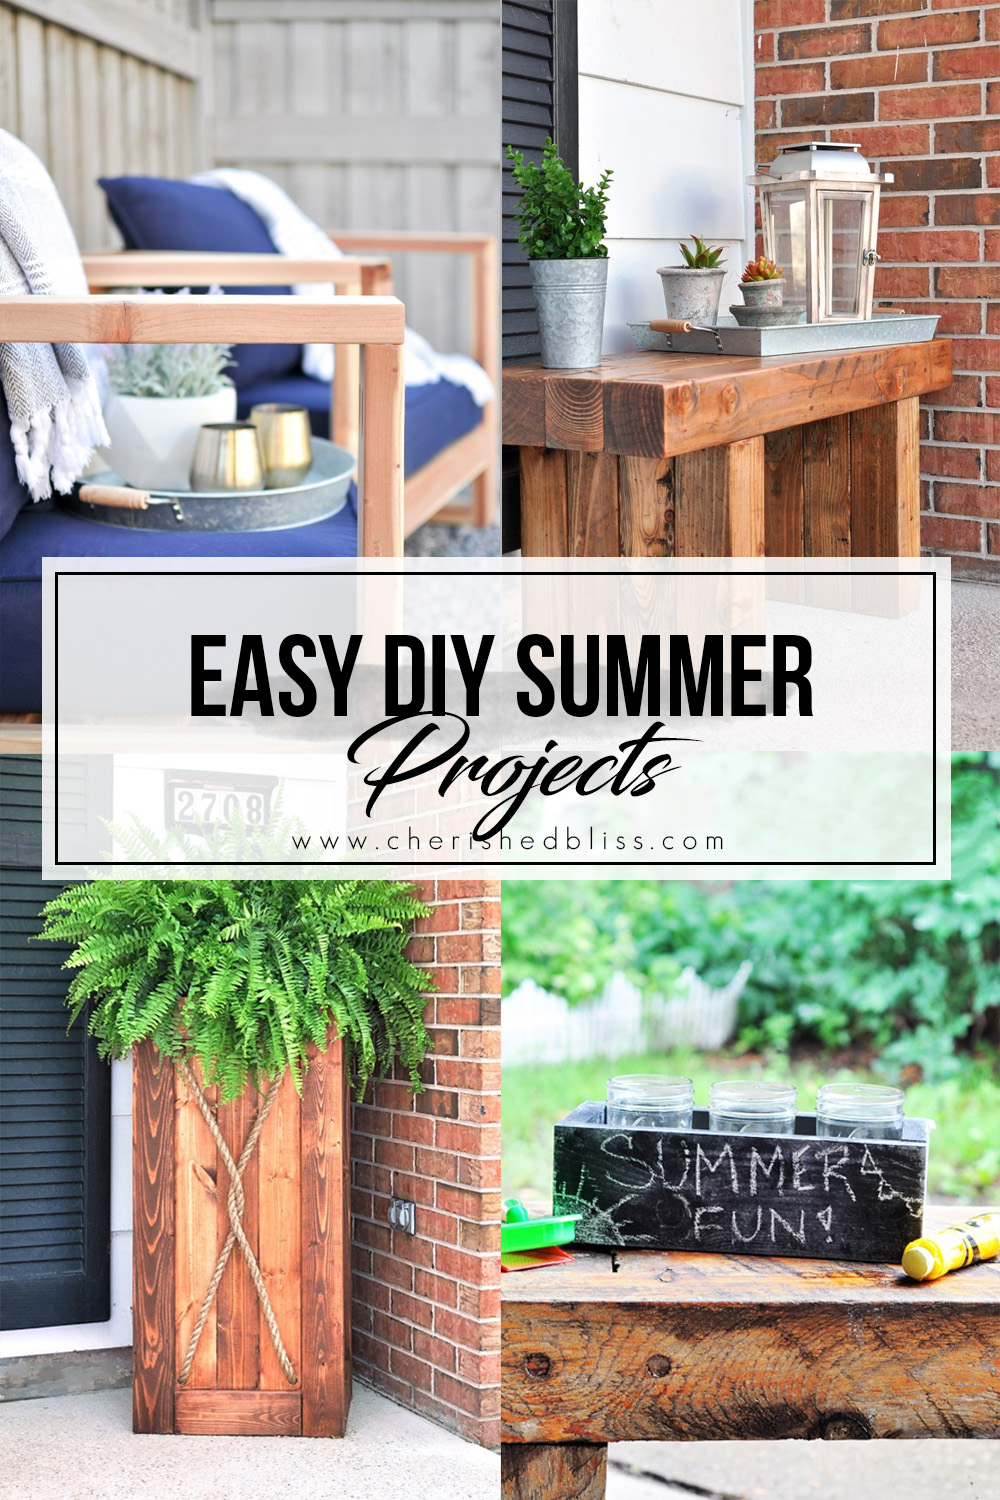 You Know Want To Add A Few More Things Your Do List I Hope Enjoy This Of DIY Summer Projects